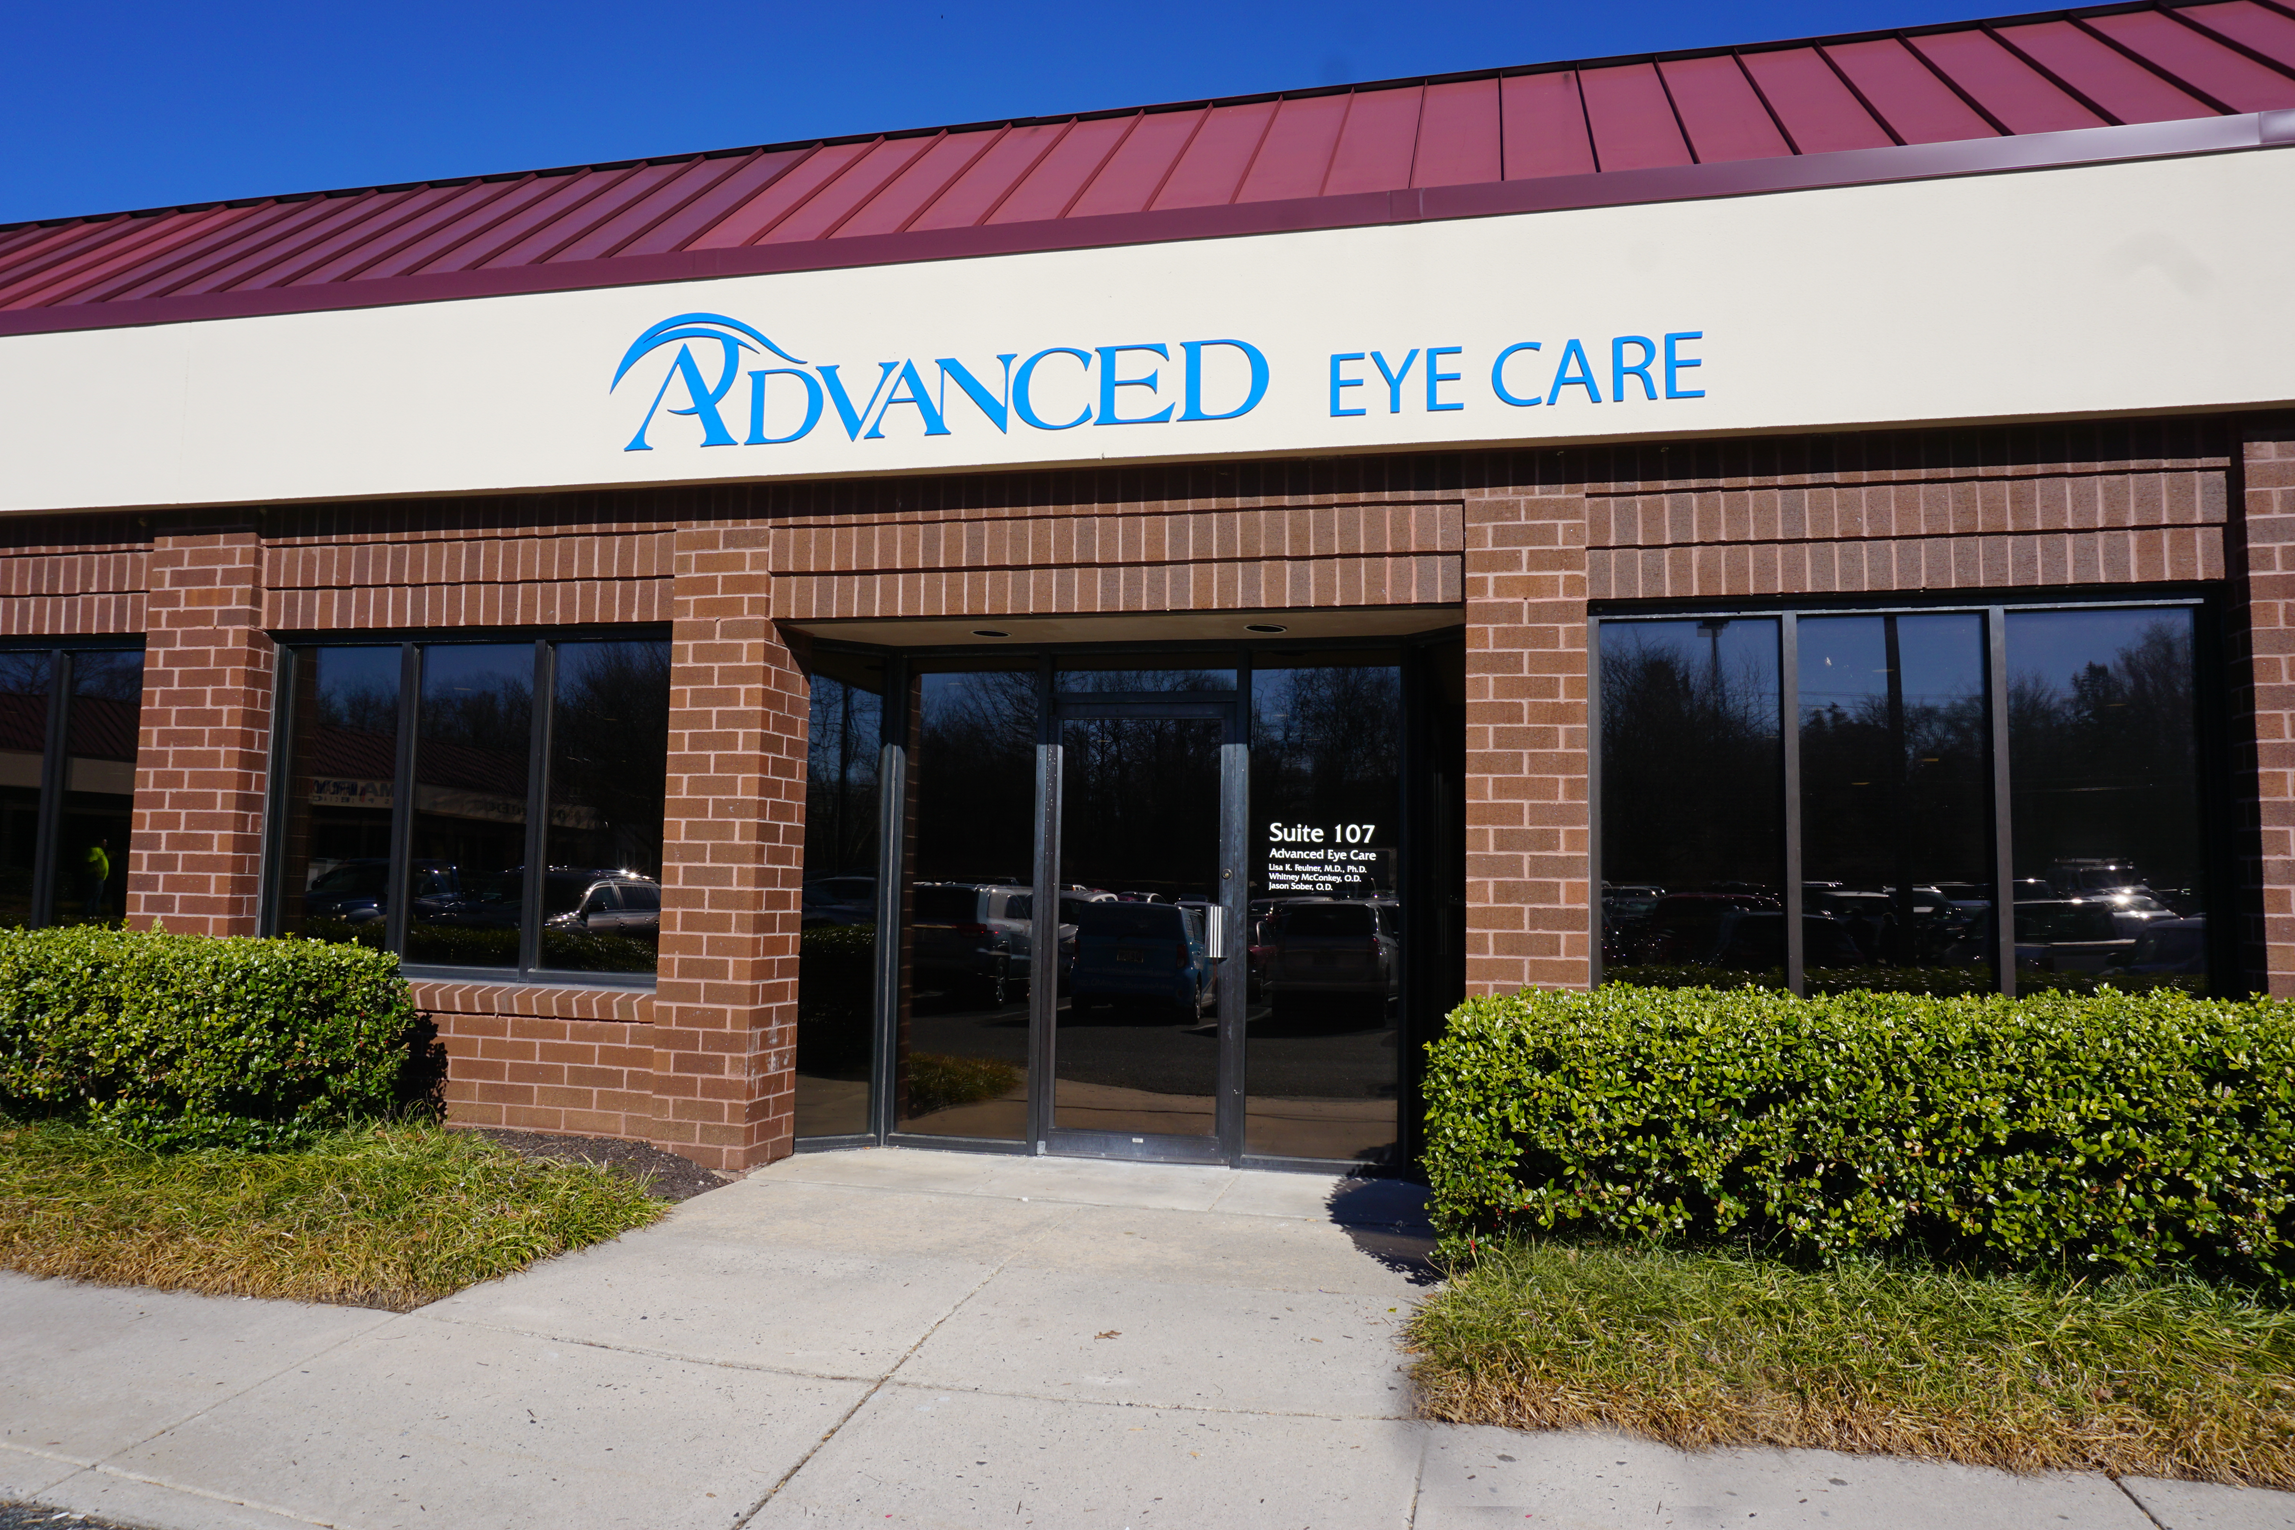 About Advanced Eye Care Best Eye Doctor In Bel Air Md